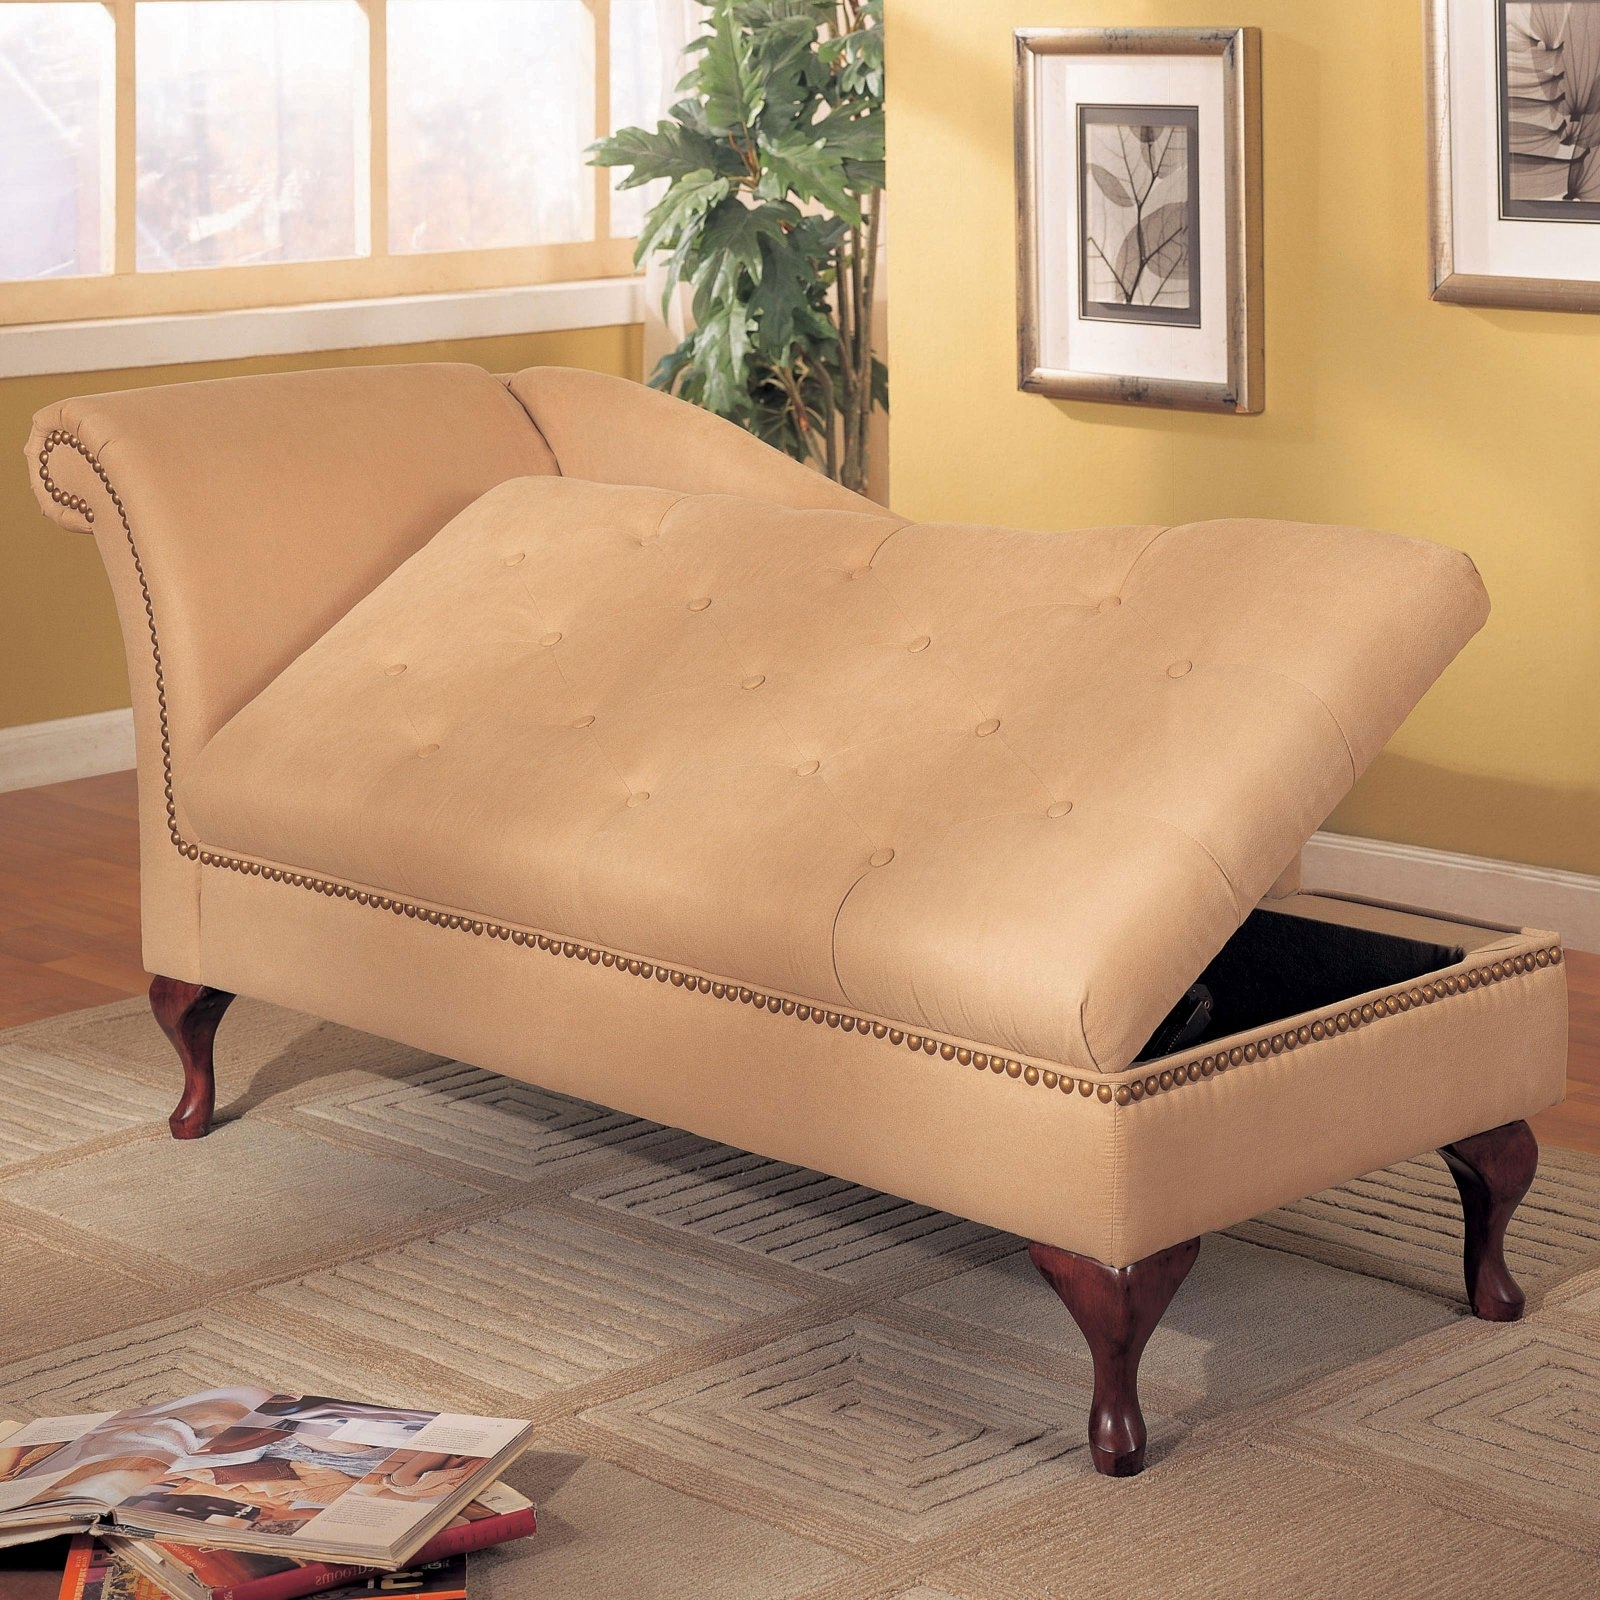 Small Chaise Lounge Chair For Room Awesome Bedroom Chairs Ideas Inside Fashionable Chaise Lounge Chairs For Bedroom (View 5 of 15)